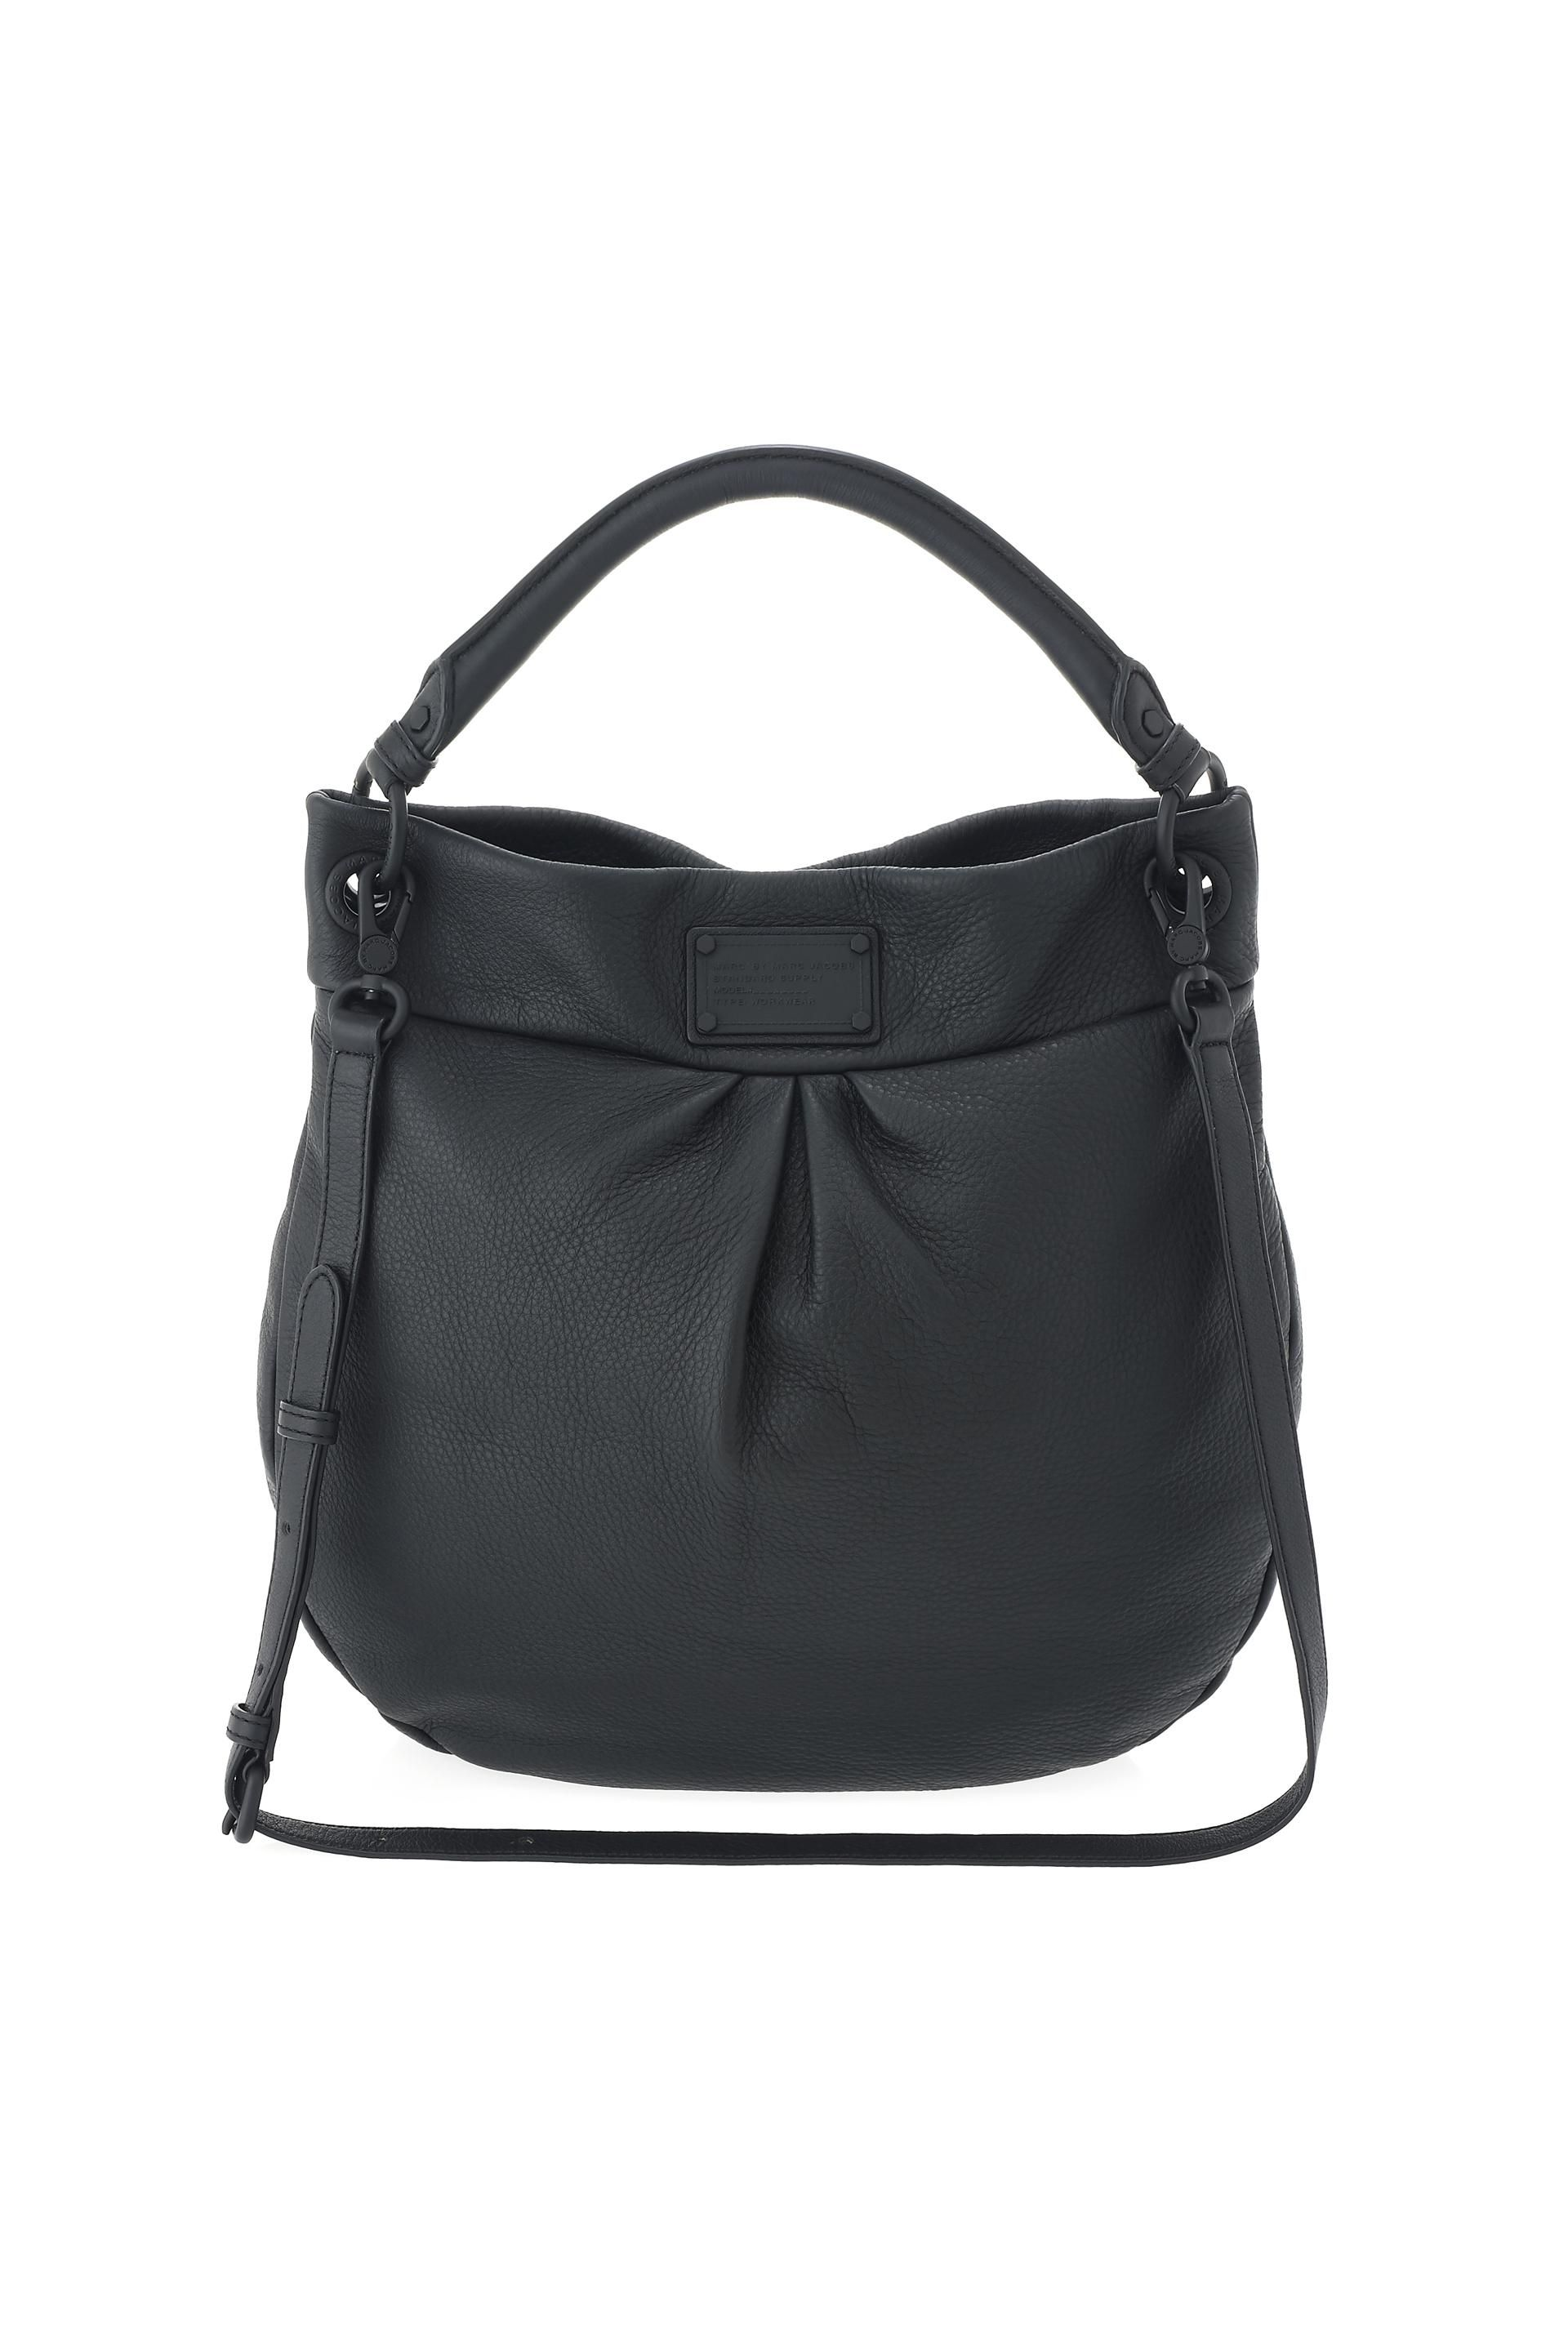 7a1953cc24 Marc by Marc Jacobs Electro Q Hillier Hobo in Black - the Classic Q gets an  electric makeover for Fall  14!